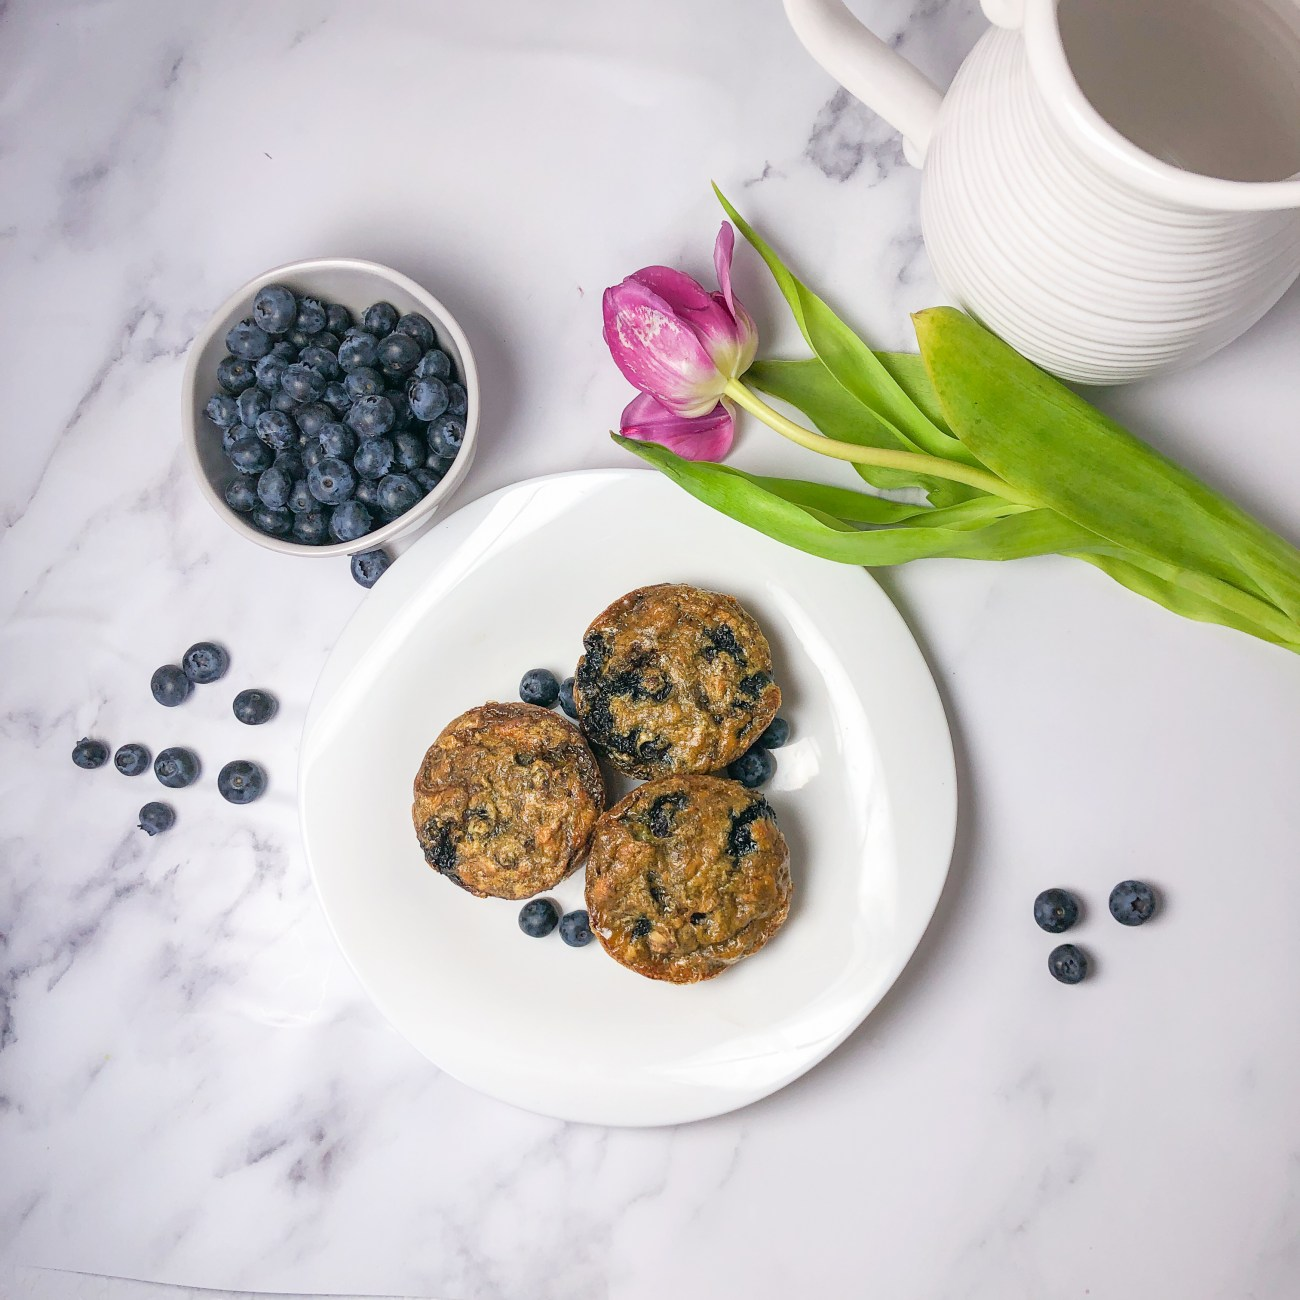 Grain-free Blueberry Banana Muffins